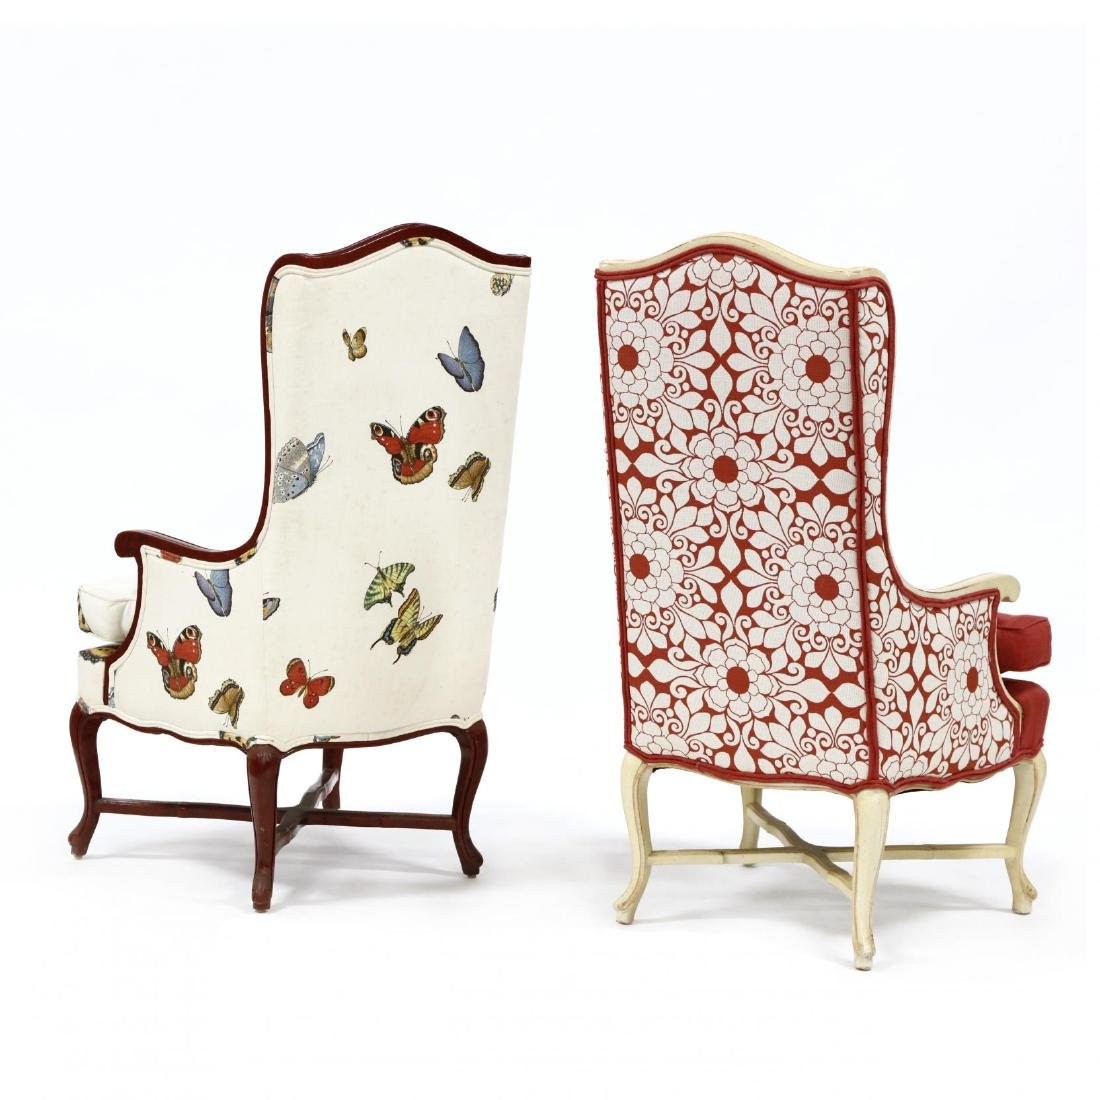 Century Furniture Co., Pair of French Provincial Style - 3